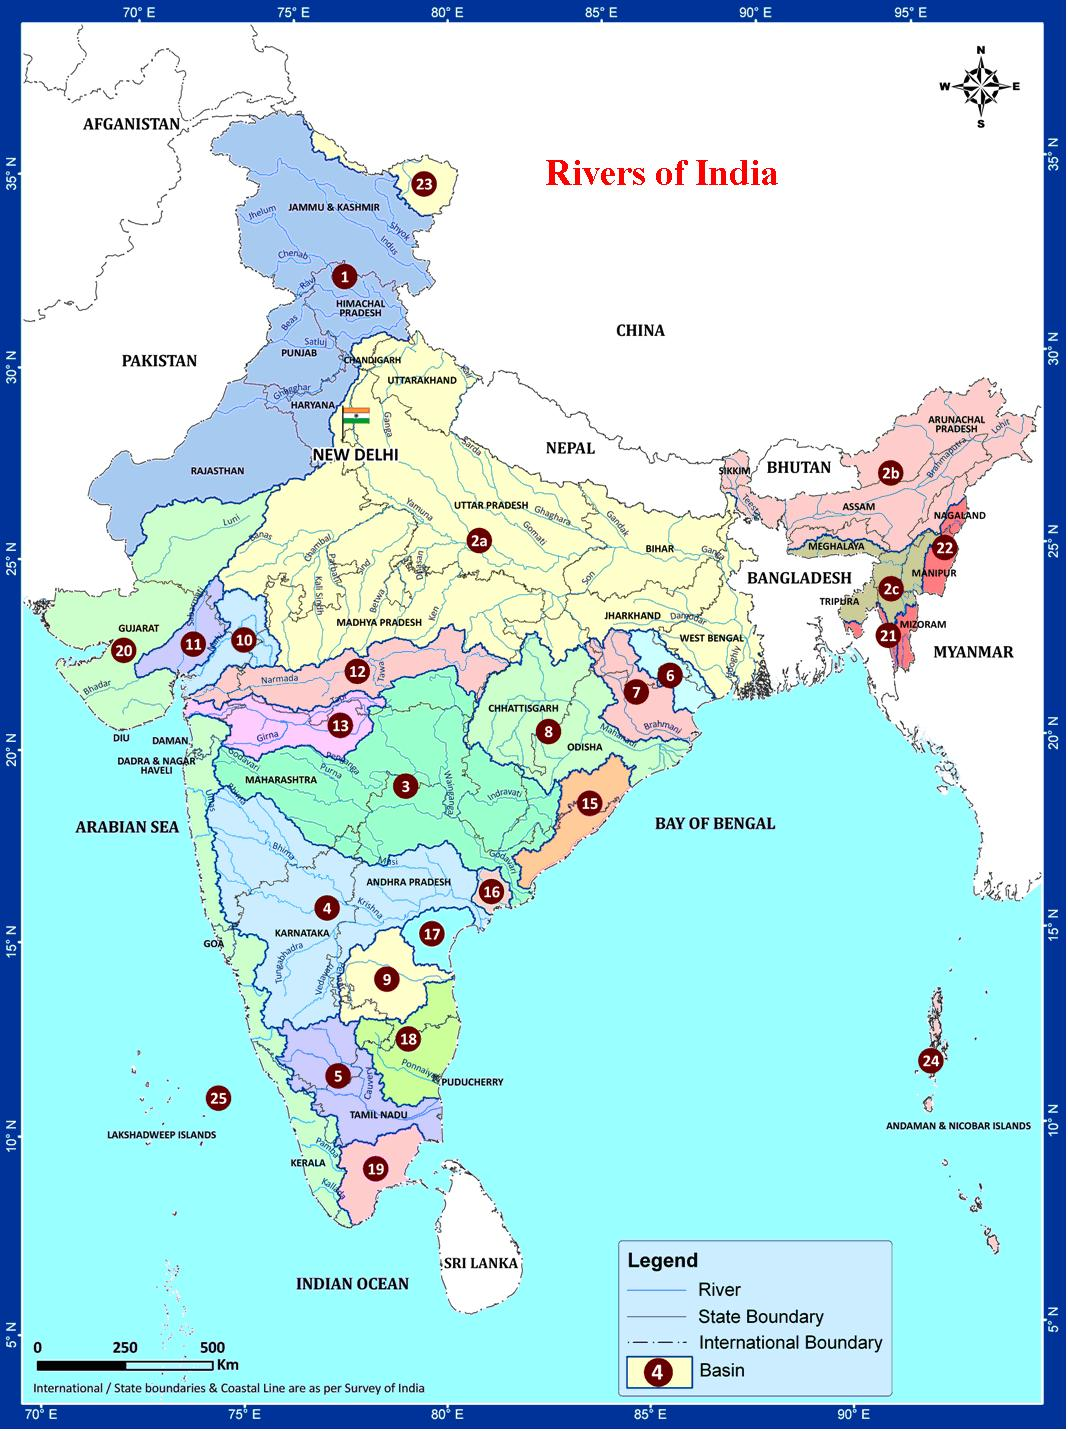 india rivers and lakes map Rivers Of India india rivers and lakes map